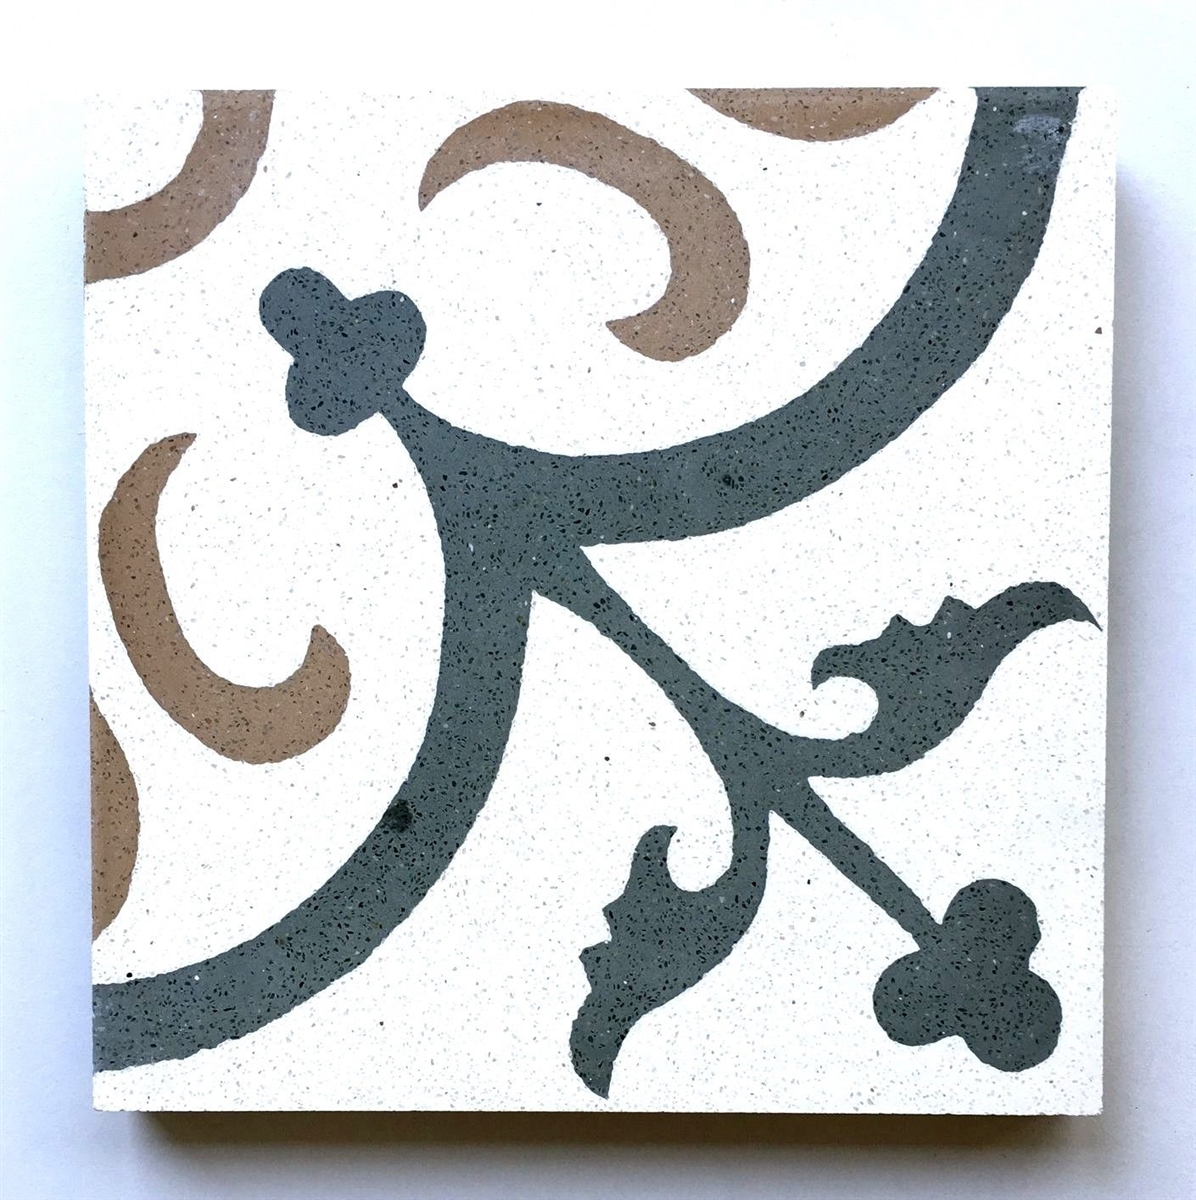 Flora Encaustic Green White Brown 8x8 Honed Finish Cement Tile